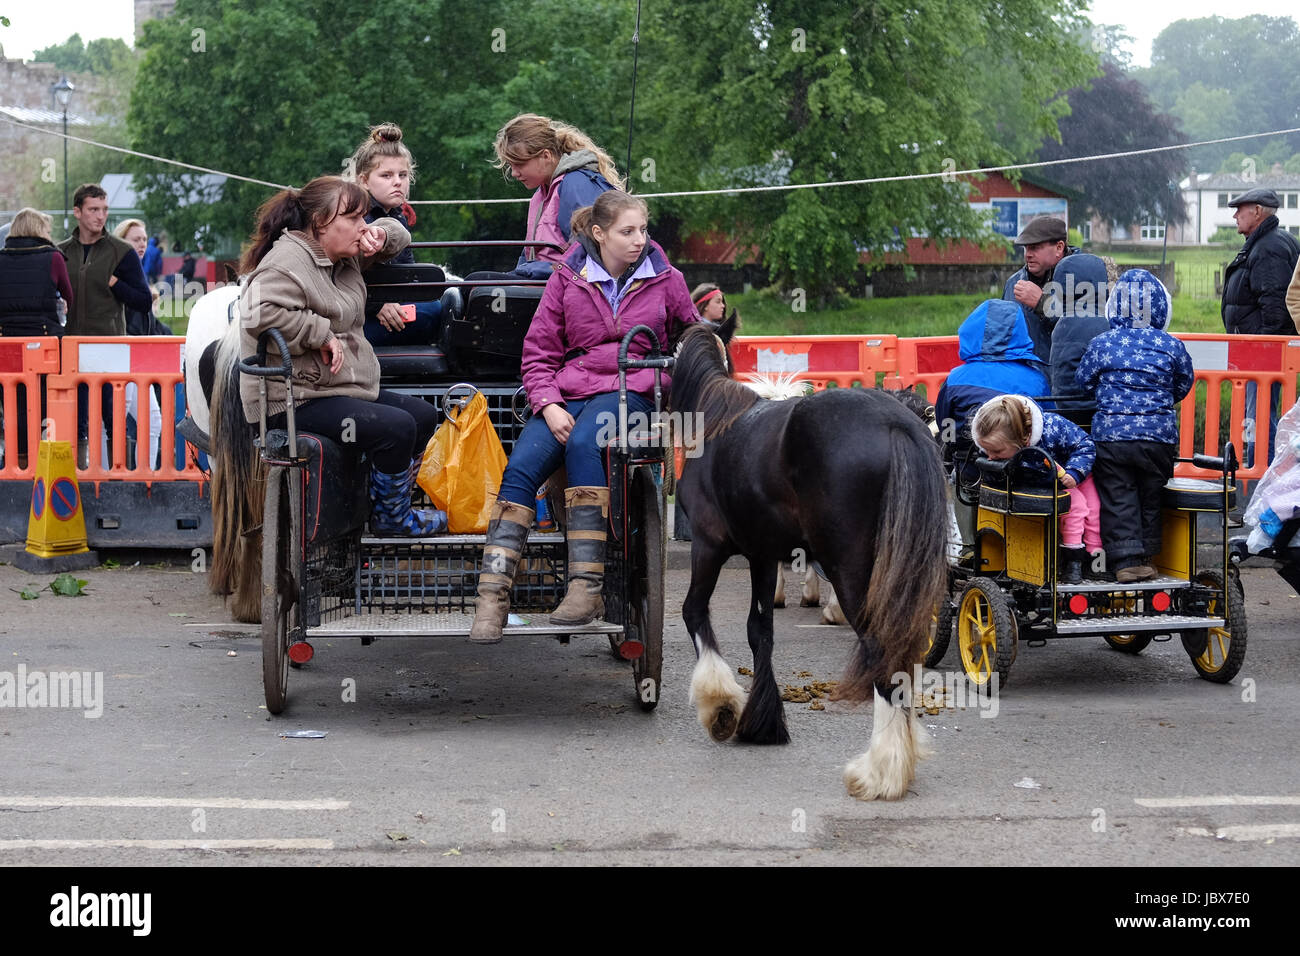 Women and children in a horse drawn cart at the Appleby Horse Fair - Stock Image